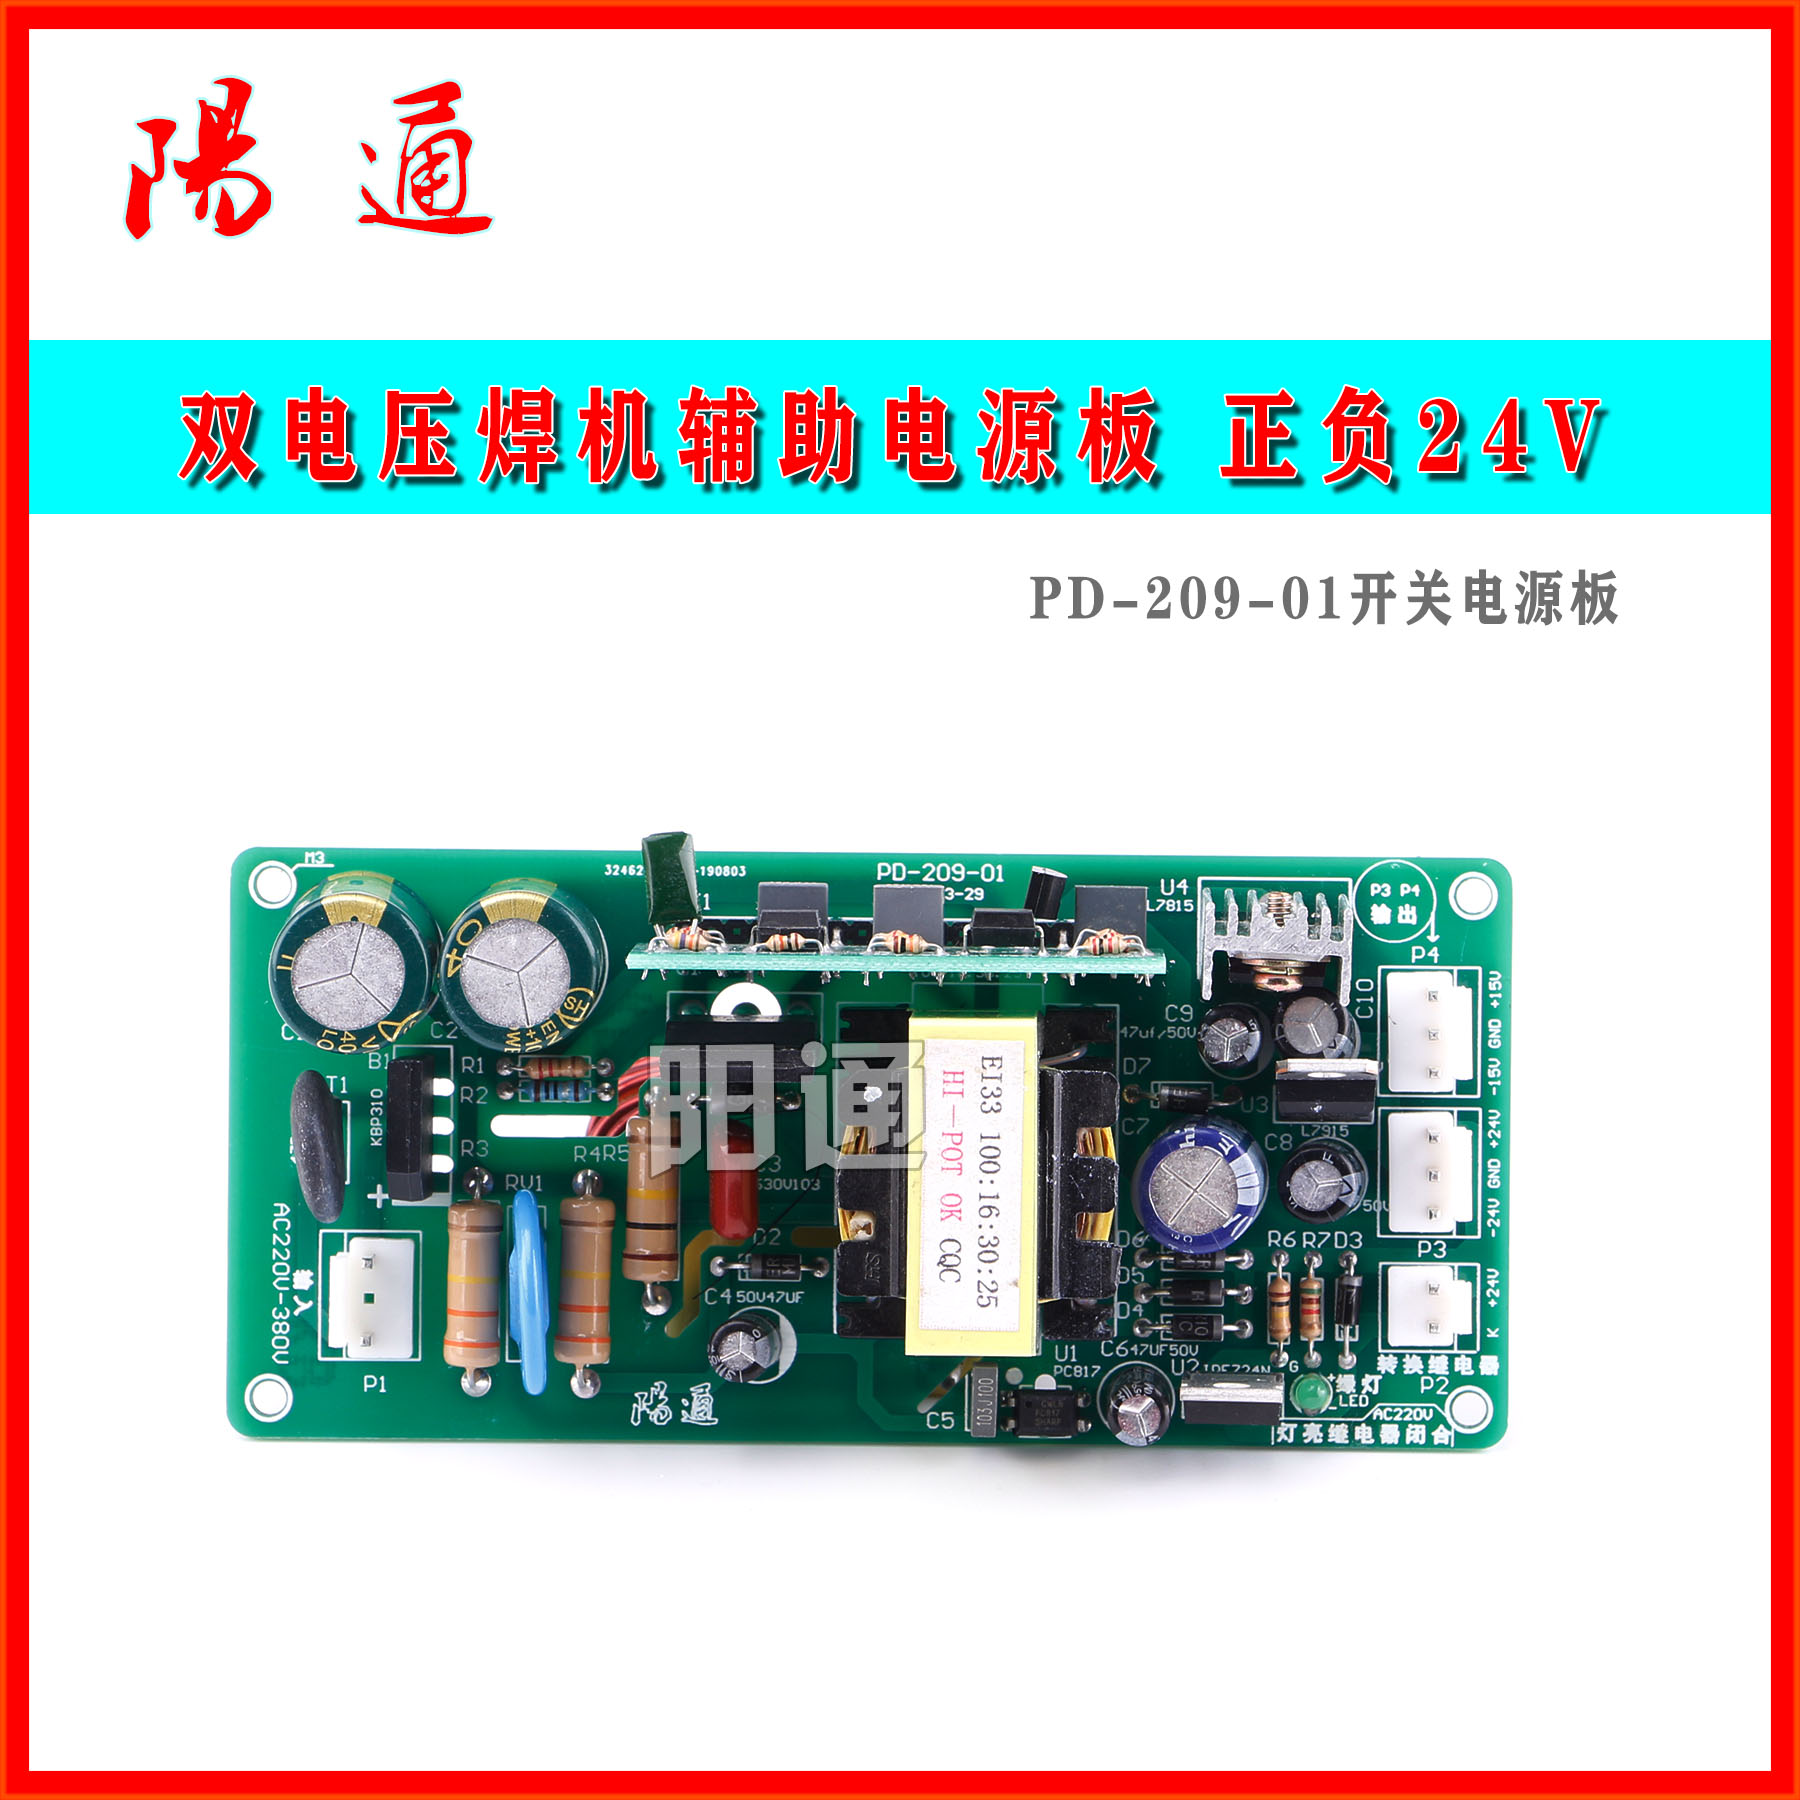 PD-209-01 Dual Voltage Welding Machine Auxiliary Power Supply Board With Voltage Identification 220/380 Dual Use